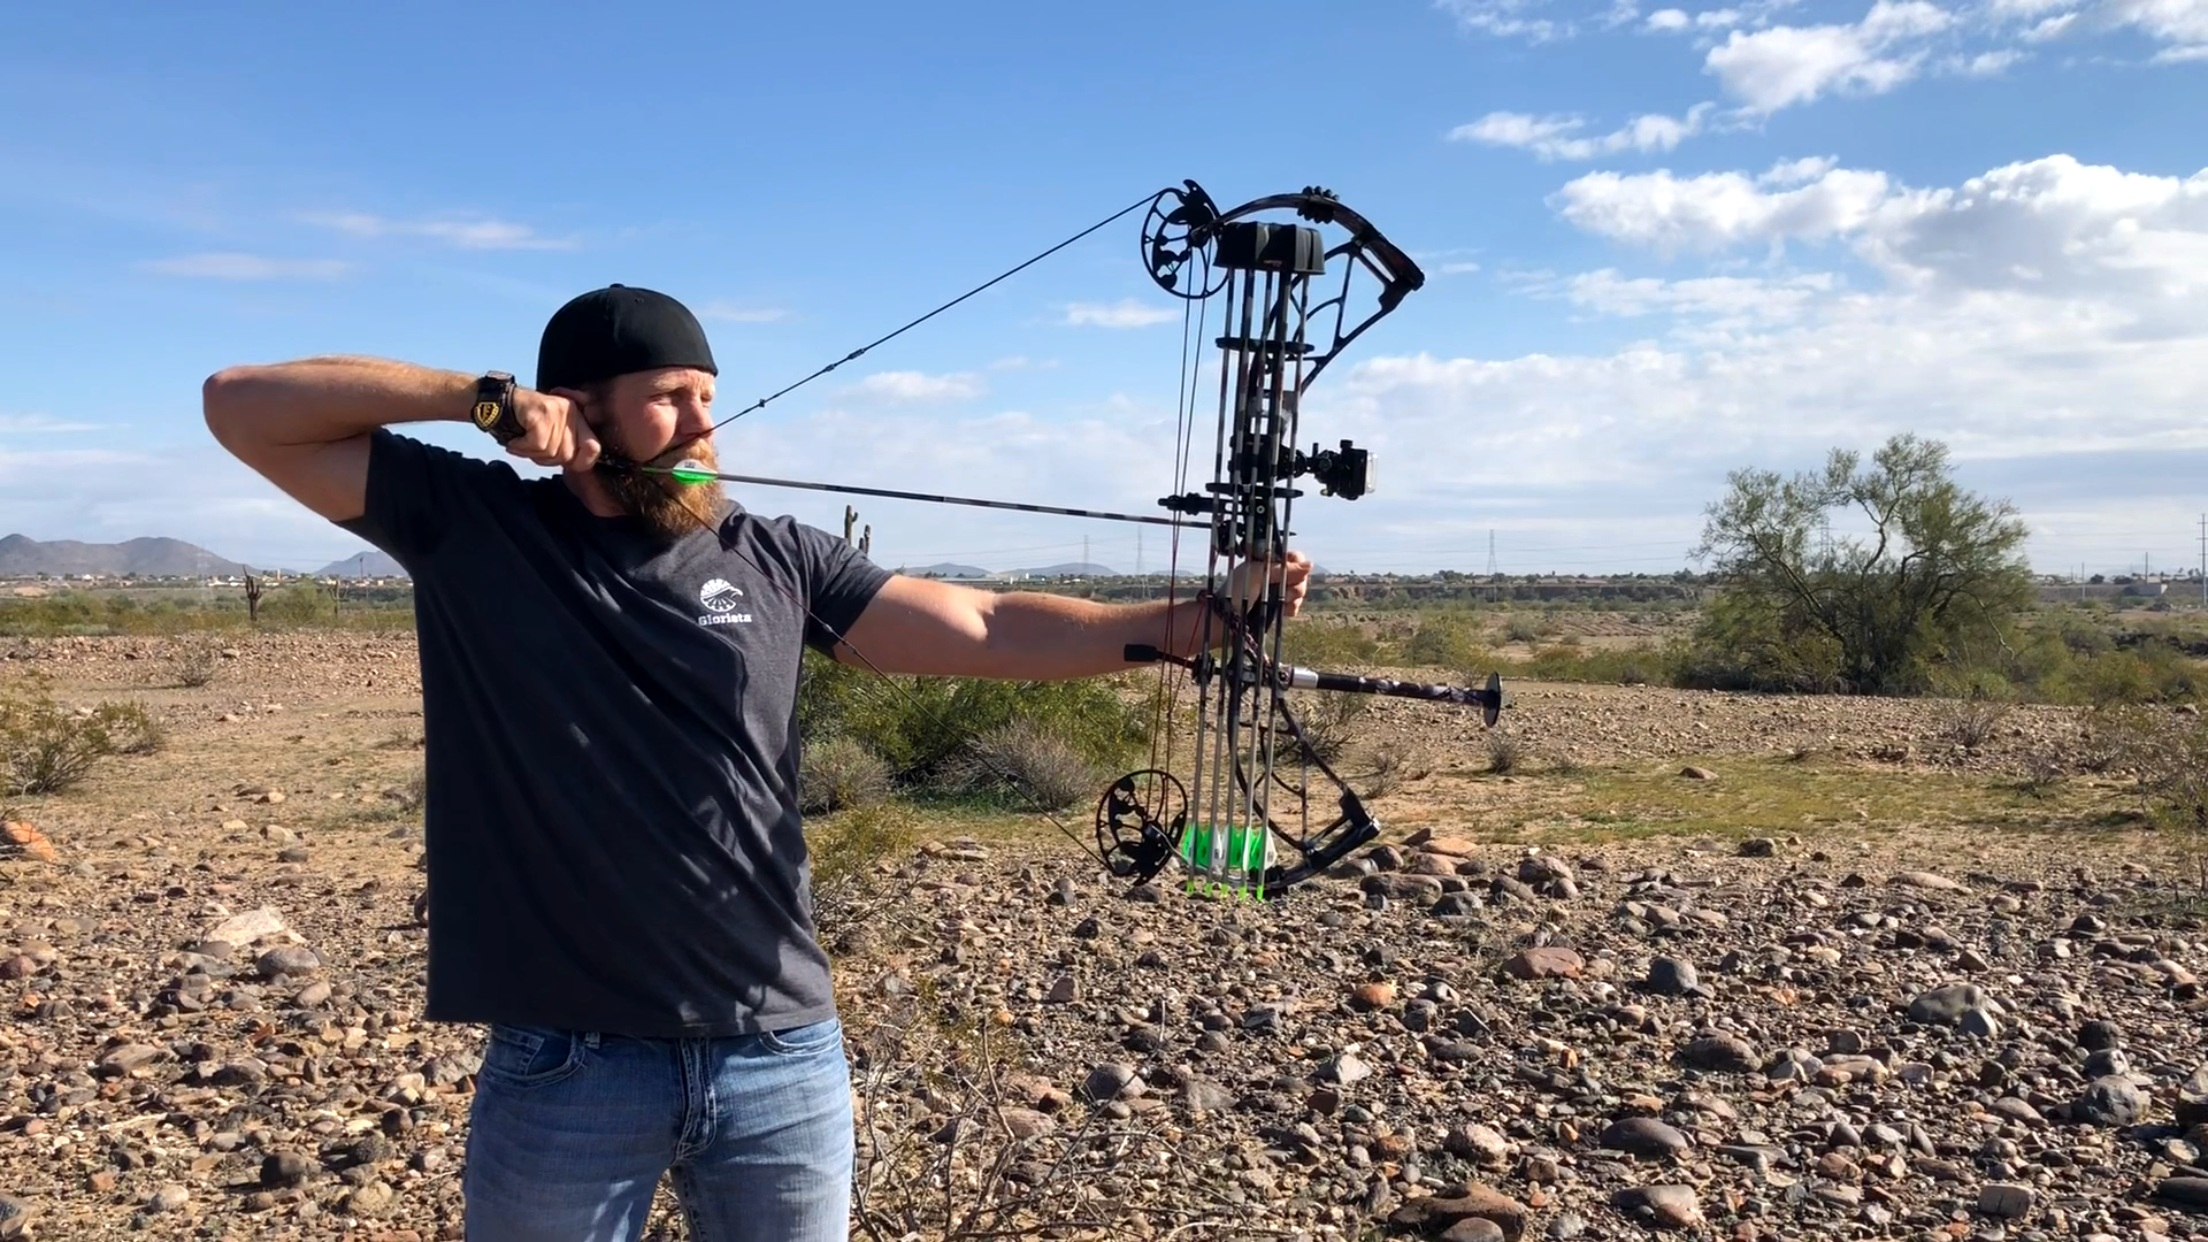 First shot after re-string and tune at my new favorite bow shop!